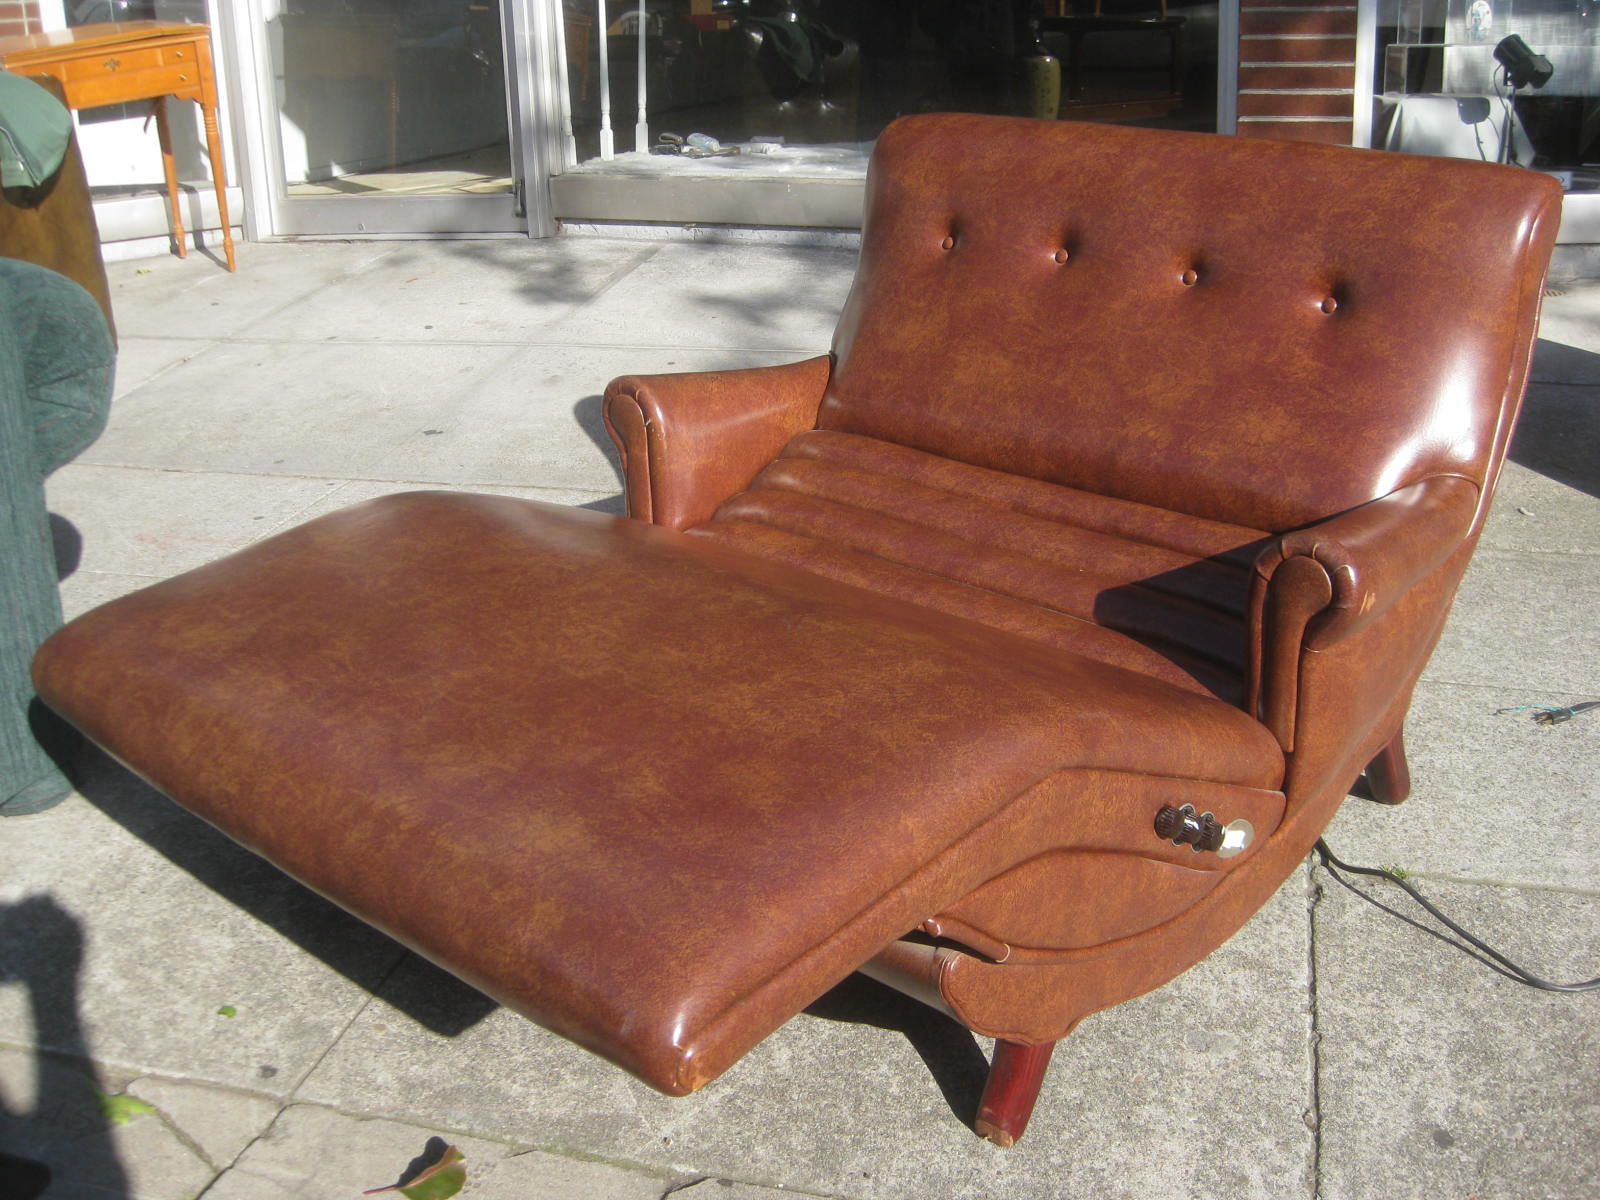 UHURU FURNITURE & COLLECTIBLES SOLD Contour Chair Lounge $175